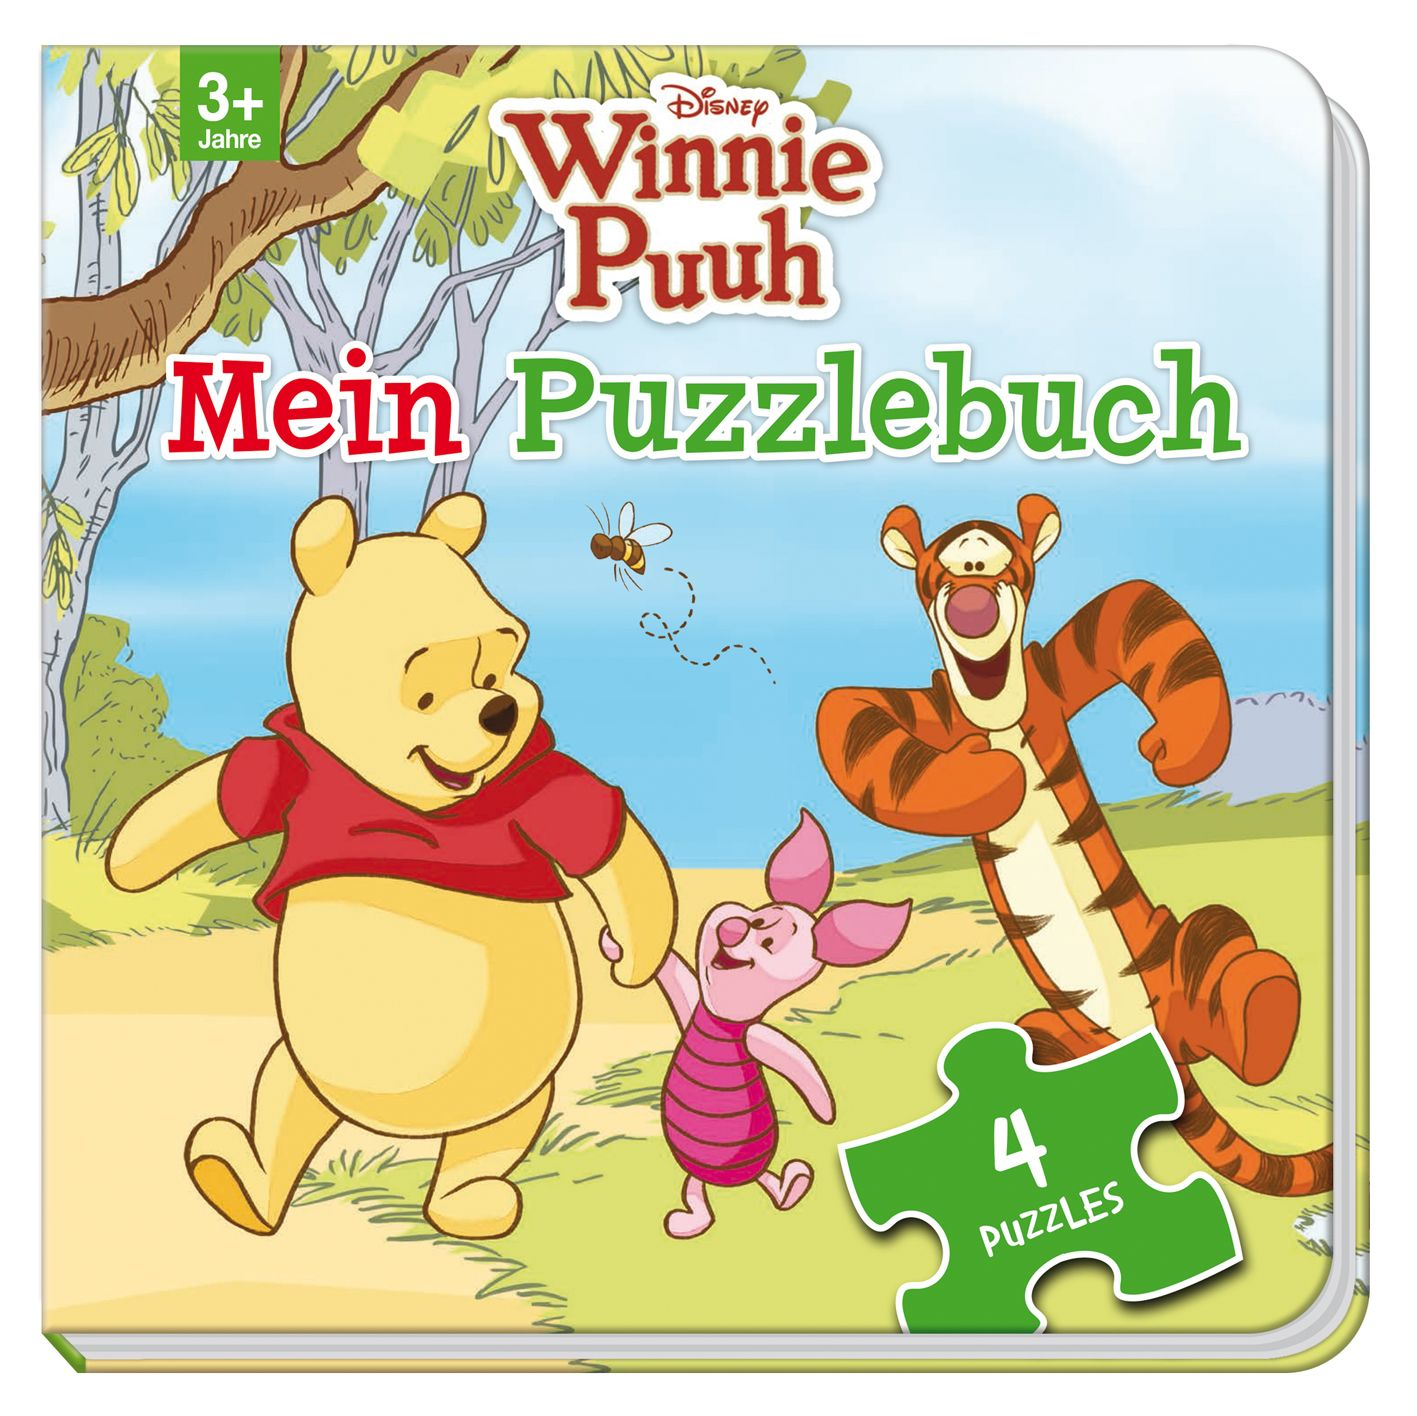 disney winnie puuh mein puzzlebuch von mit 4 puzzles zu je 12 teile. Black Bedroom Furniture Sets. Home Design Ideas